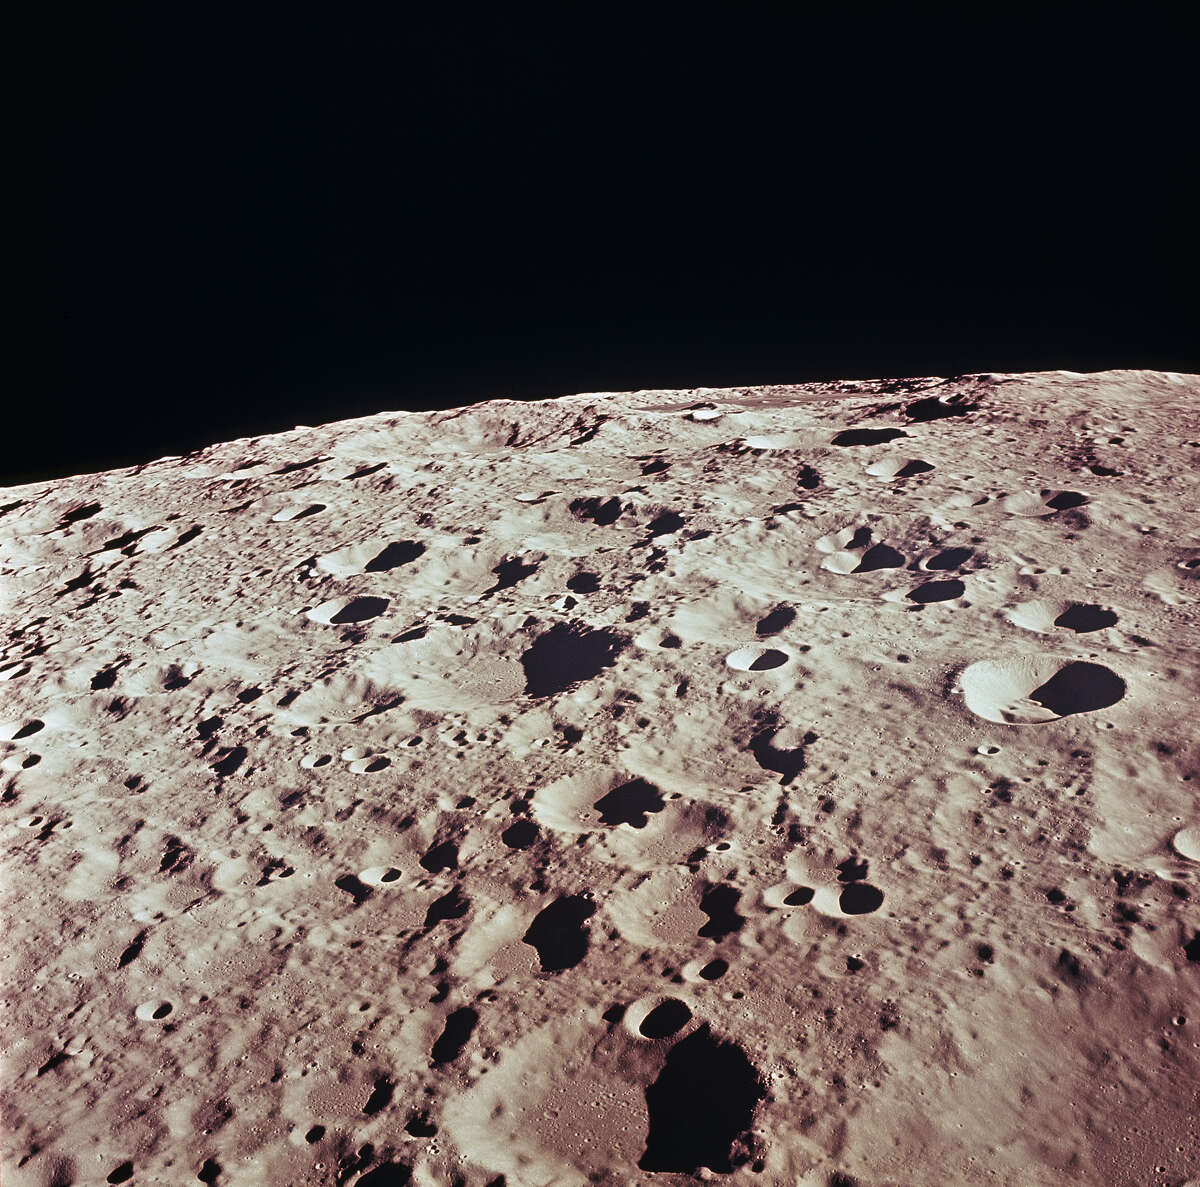 This is a detailed view of the back side of Moon in the vicinity of Crater No. 308 taken during the Apollo 11 mission. Apollo 11, the first manned lunar mission, launched from The Kennedy Space Center, Florida via a Saturn V launch vehicle on July 16, 1969. The 3-man crew aboard the flight consisted of Neil A. Armstrong, commander; Michael Collins, Command Module pilot; and Edwin E. Aldrin Jr., Lunar Module pilot. The Lunar Module (LM), named